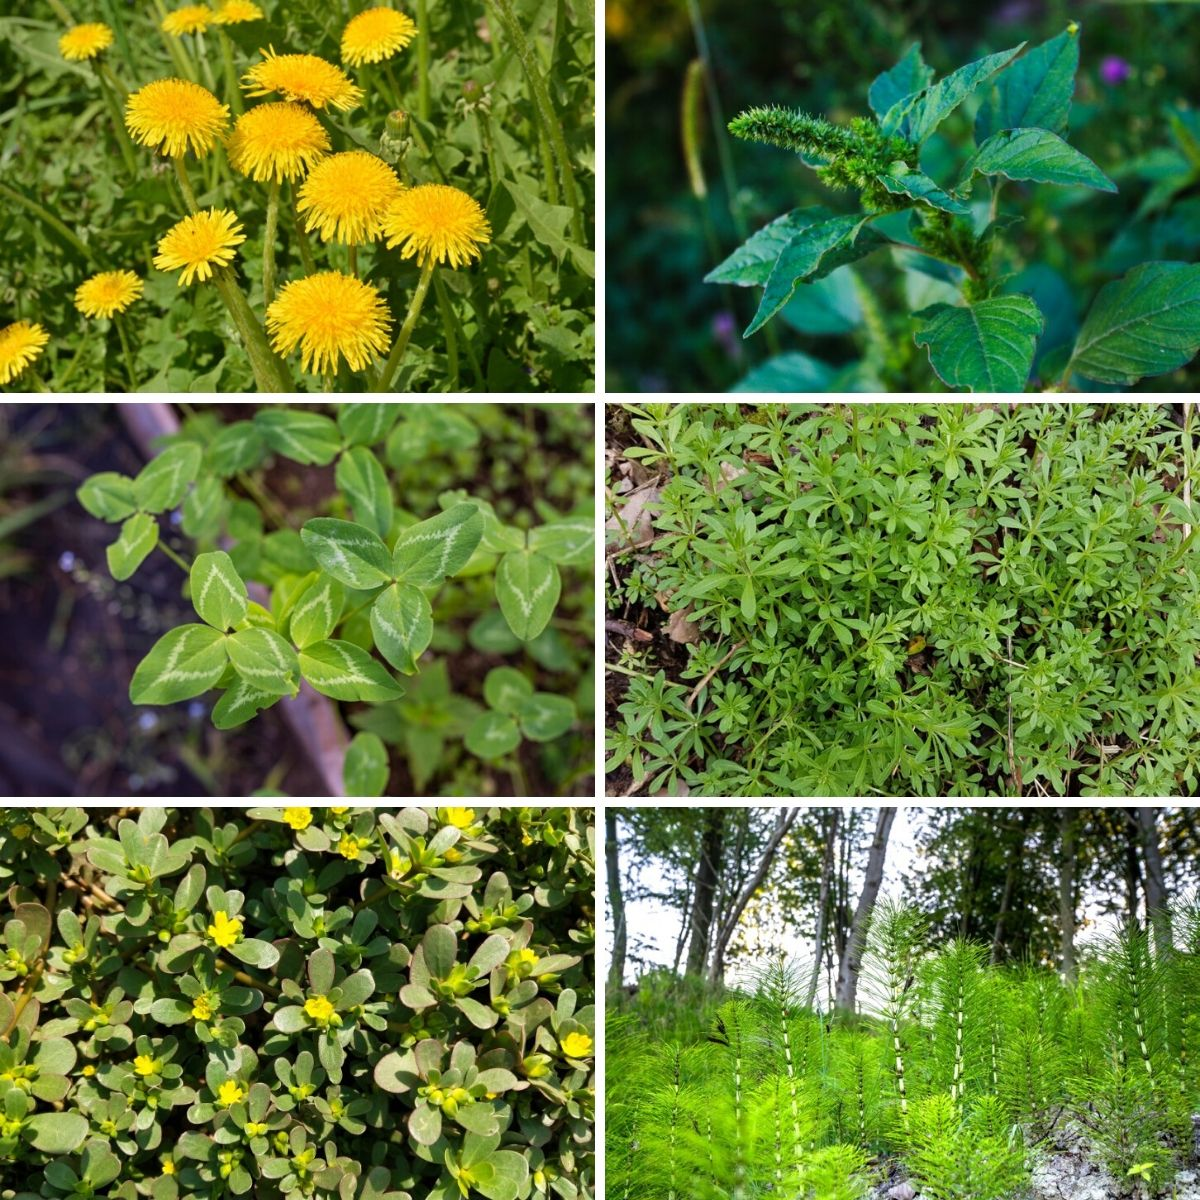 Collage photo of several edible wildflowers and weeds from the article collection